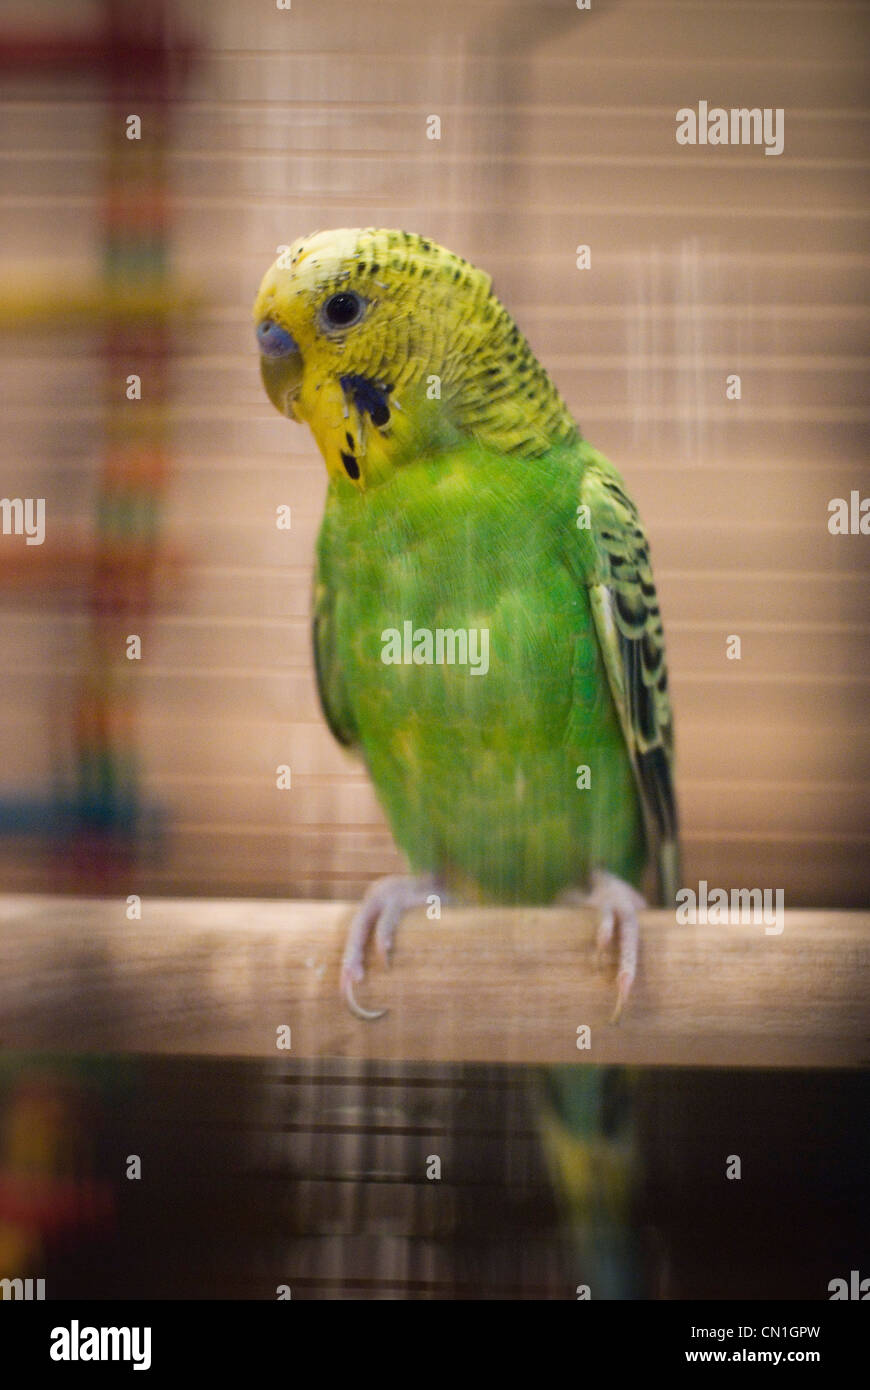 Close-up on Pet Parakeet in Cage - Stock Image